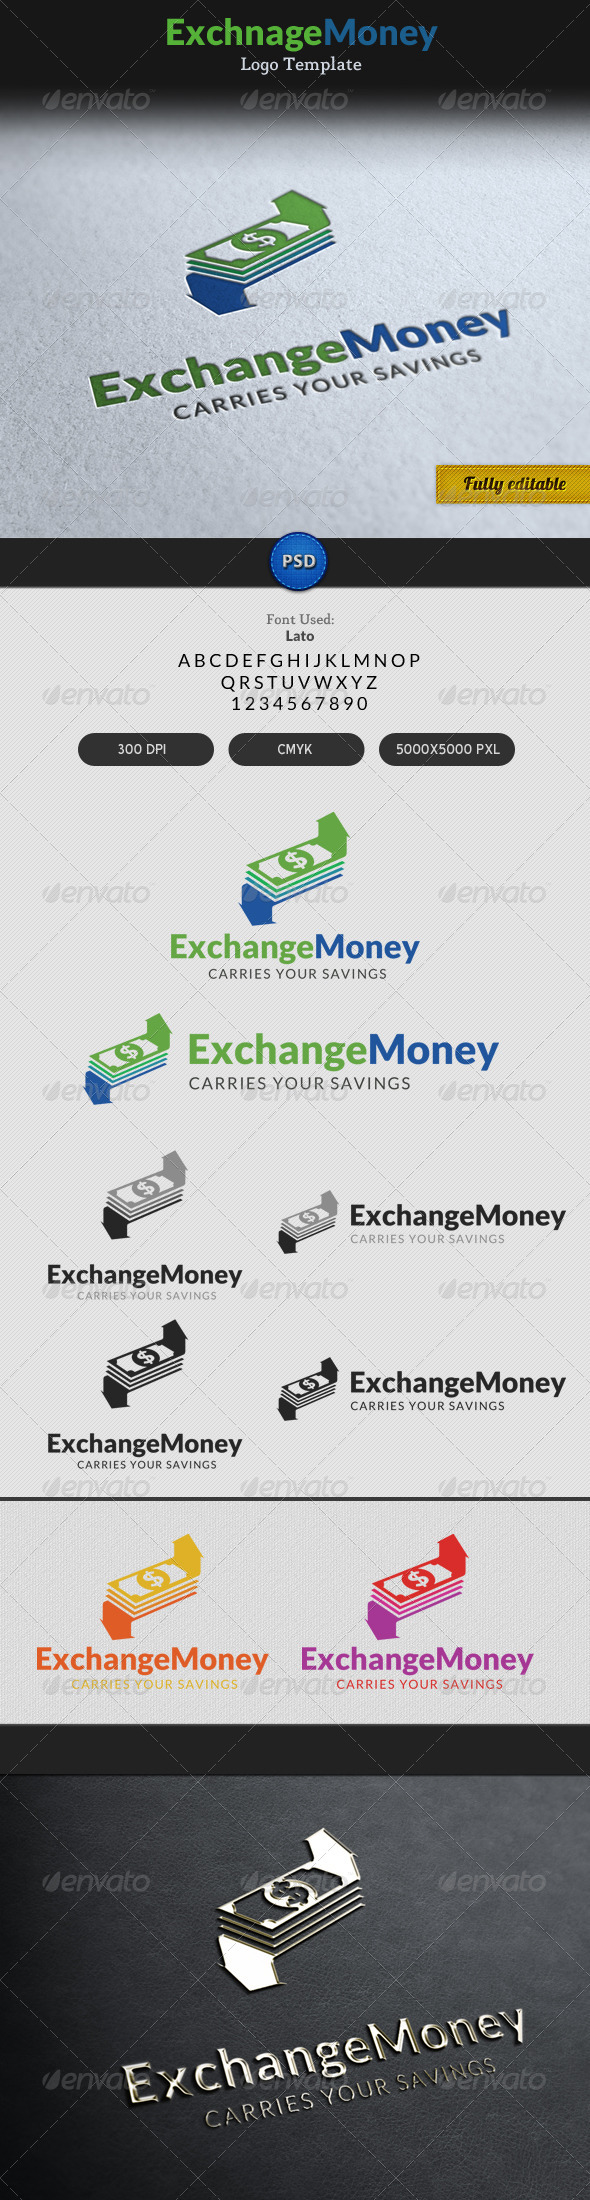 Exchange Money Currency Transaction Logo